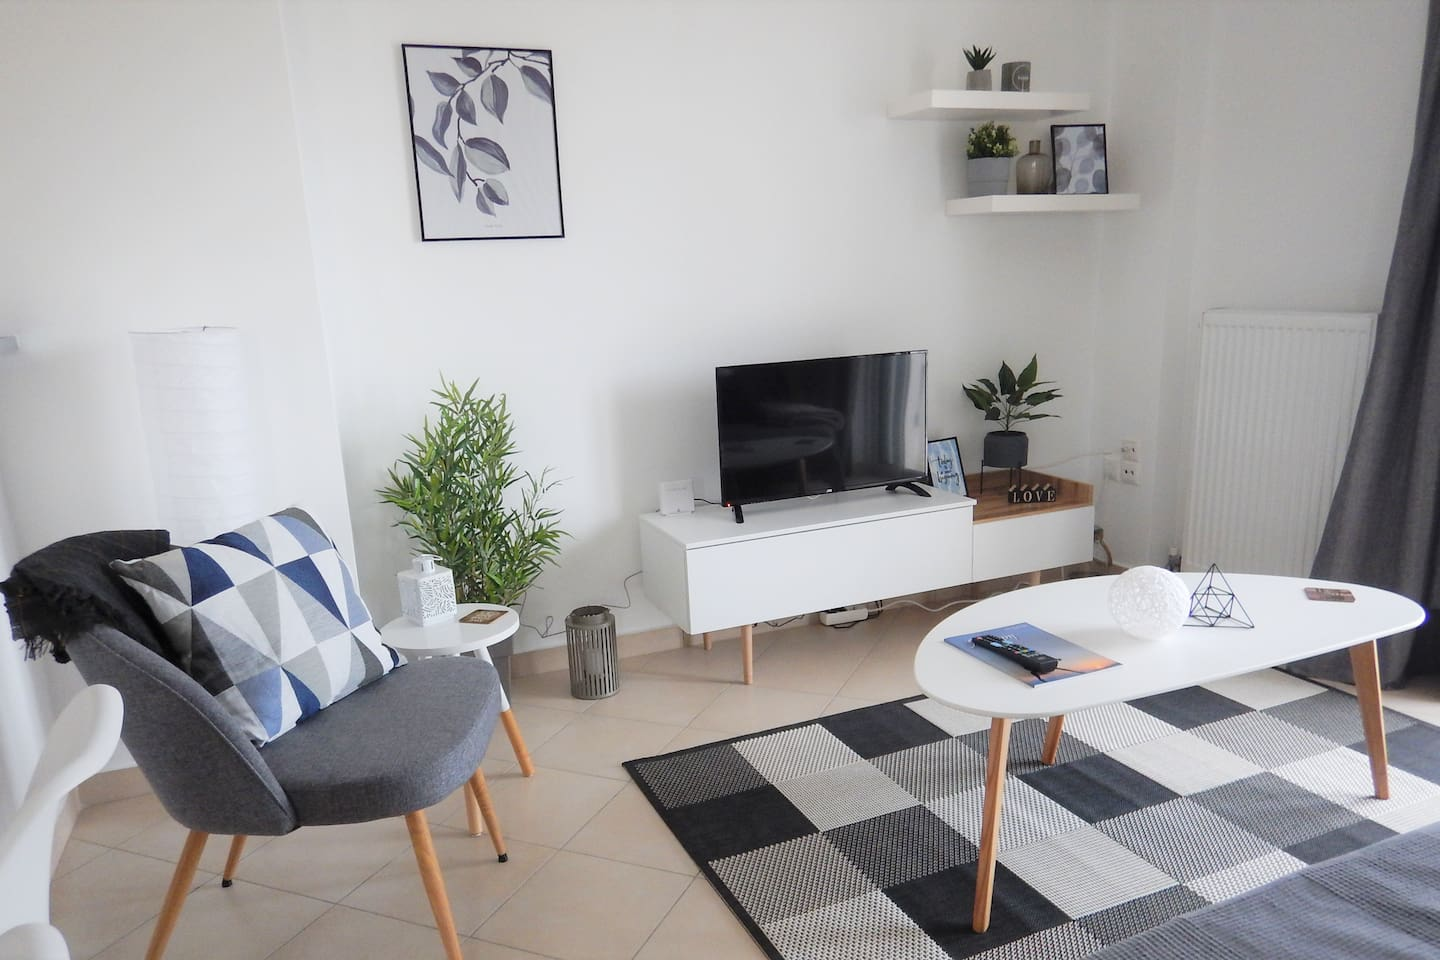 A modern, eco-friendly 62 sqm apartment near the sea and main town of Nea Makri. Enjoy our amenities and modern decor for a relaxed vacation!